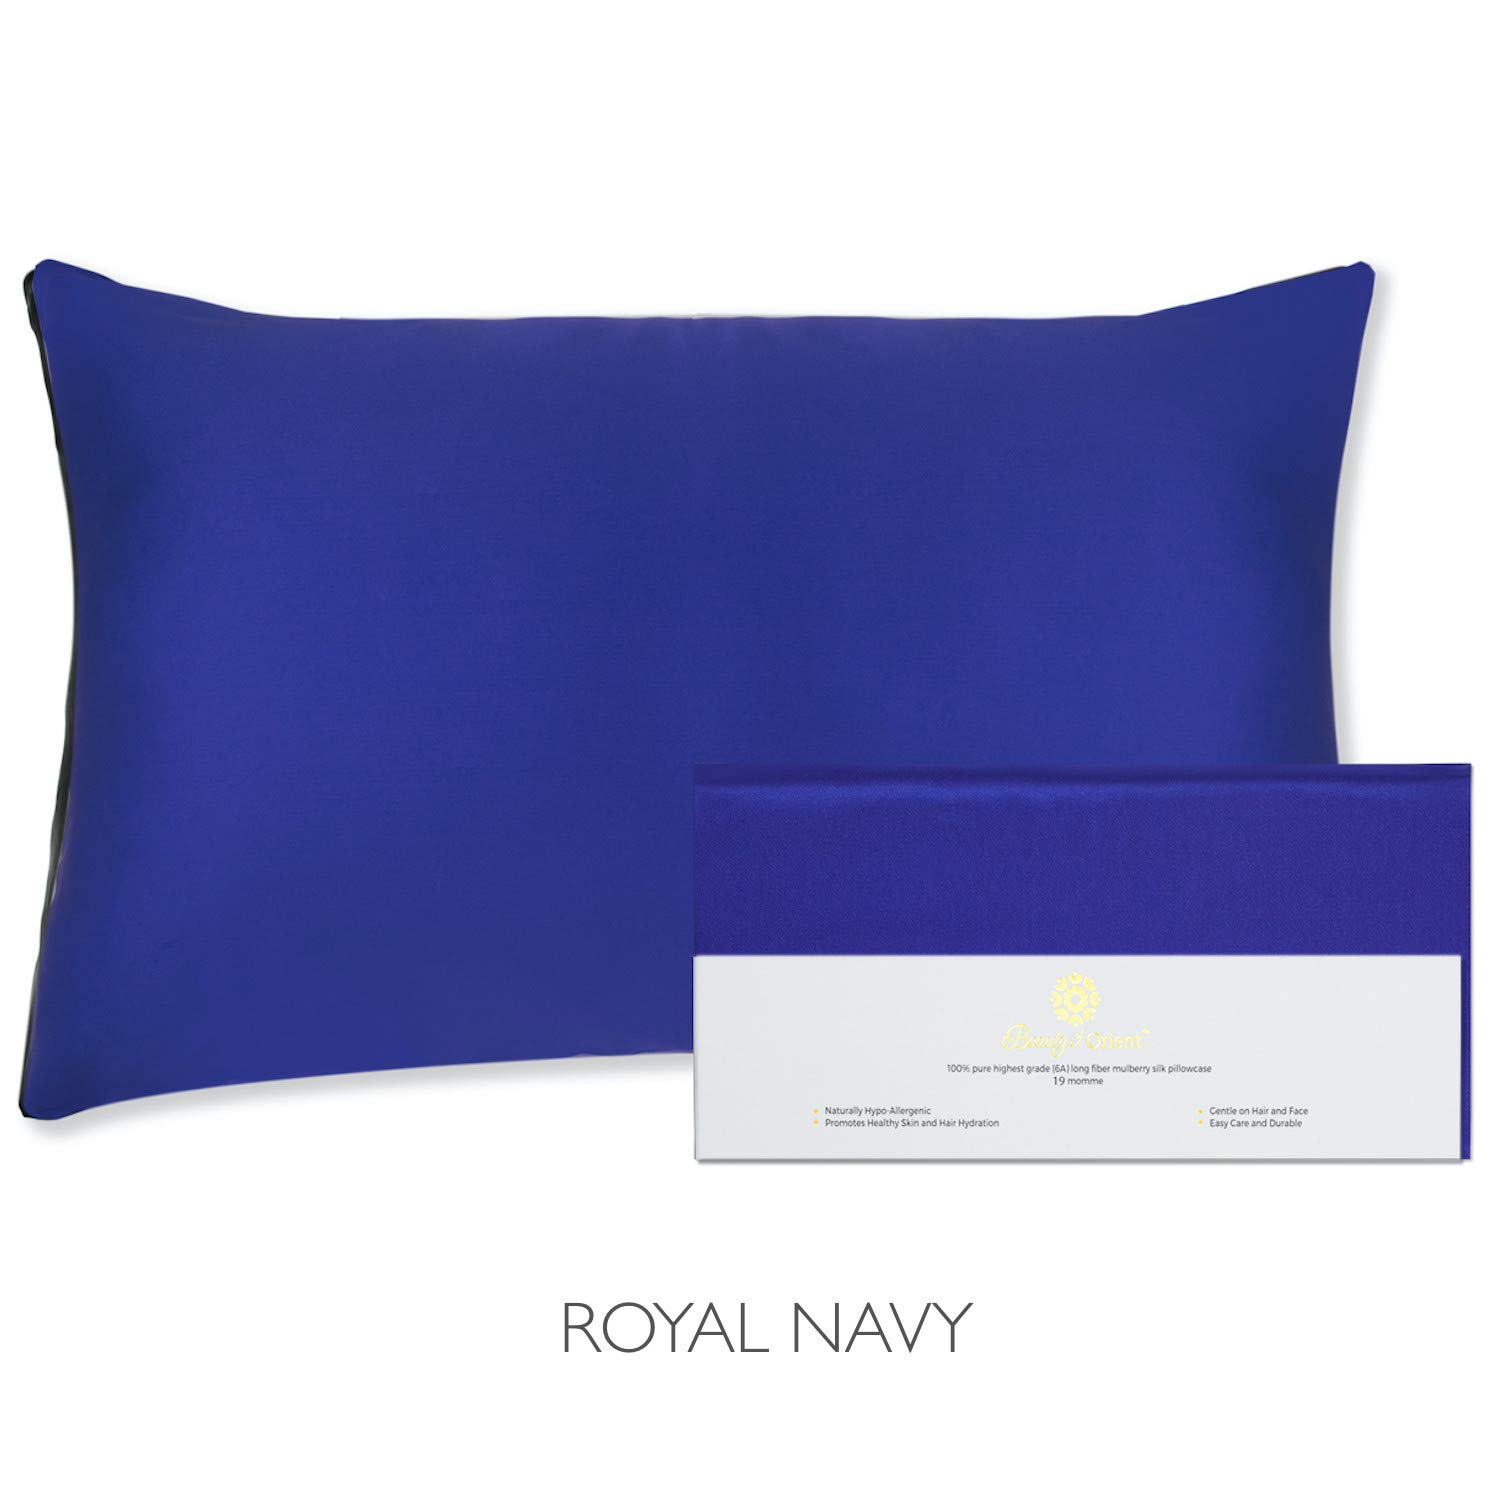 """Beauty of Orient 100% Pure Mulberry Silk Pillowcase for Hair and Skin, 19 Momme Both Sides, Hidden Zipper, Natural Hypoallergenic Silk Pillow Case - Best Sleep (1pc Standard - 20"""" x 26"""", Royal Navy)"""